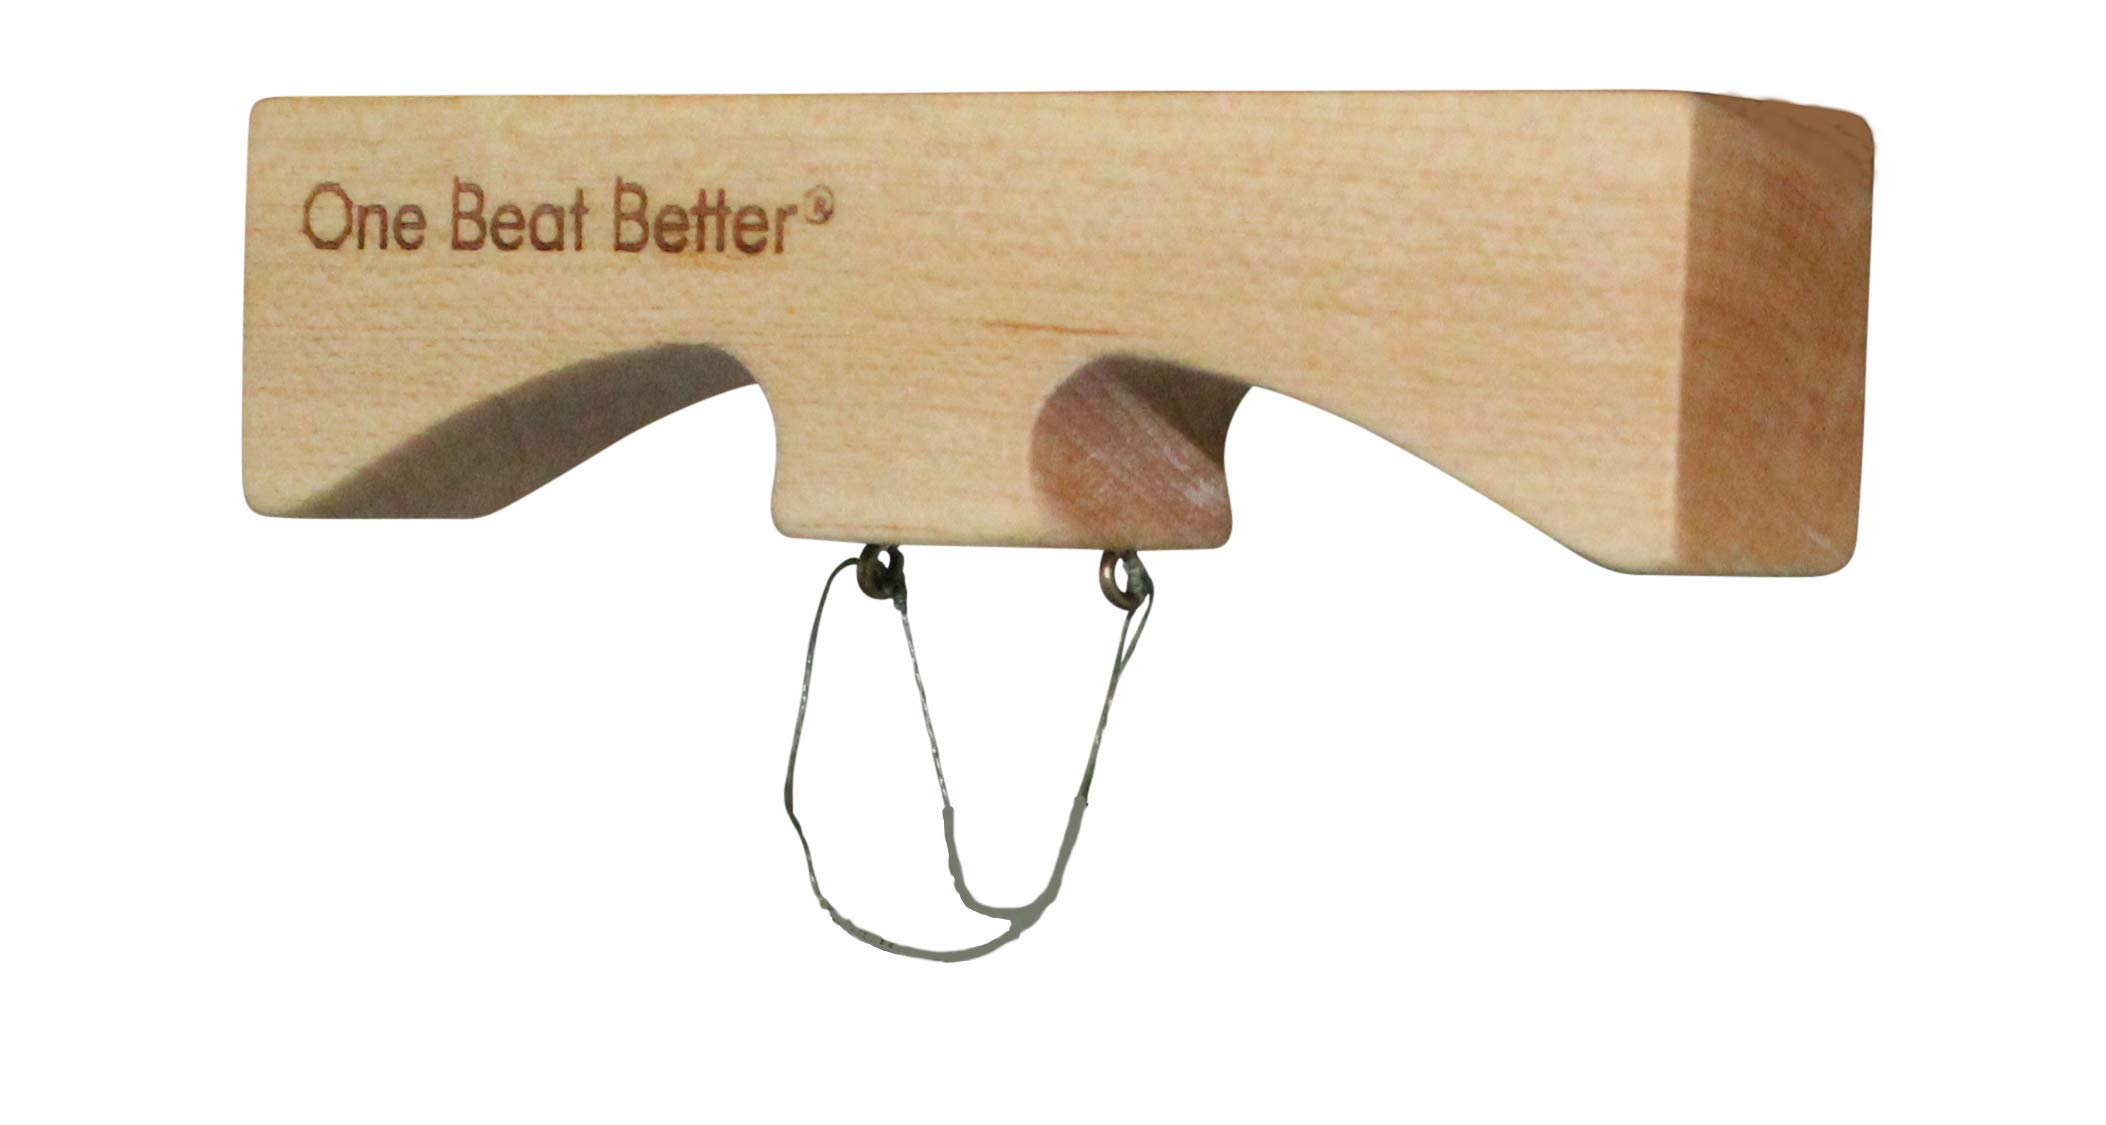 The Elevon Professional Model Triangle Holder by One Beat Better